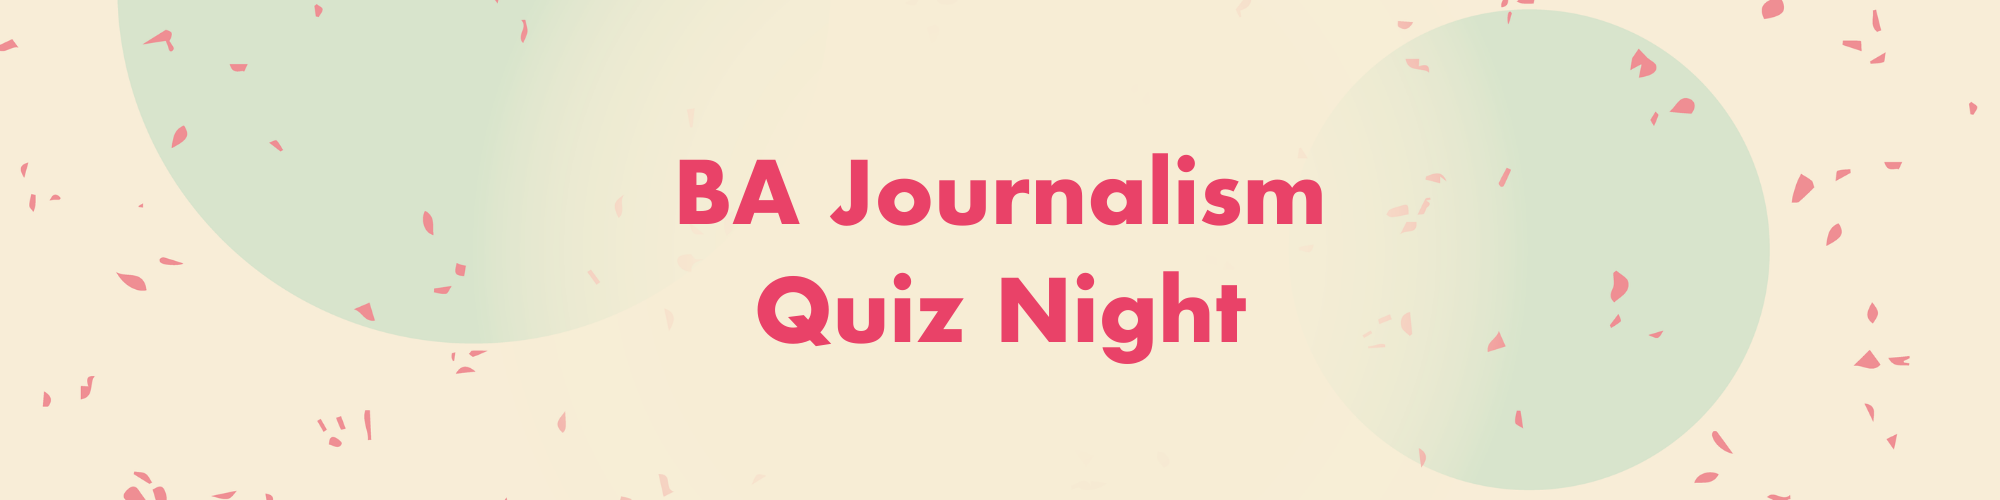 BA Journalism and BA Journalism/History Quiz Night